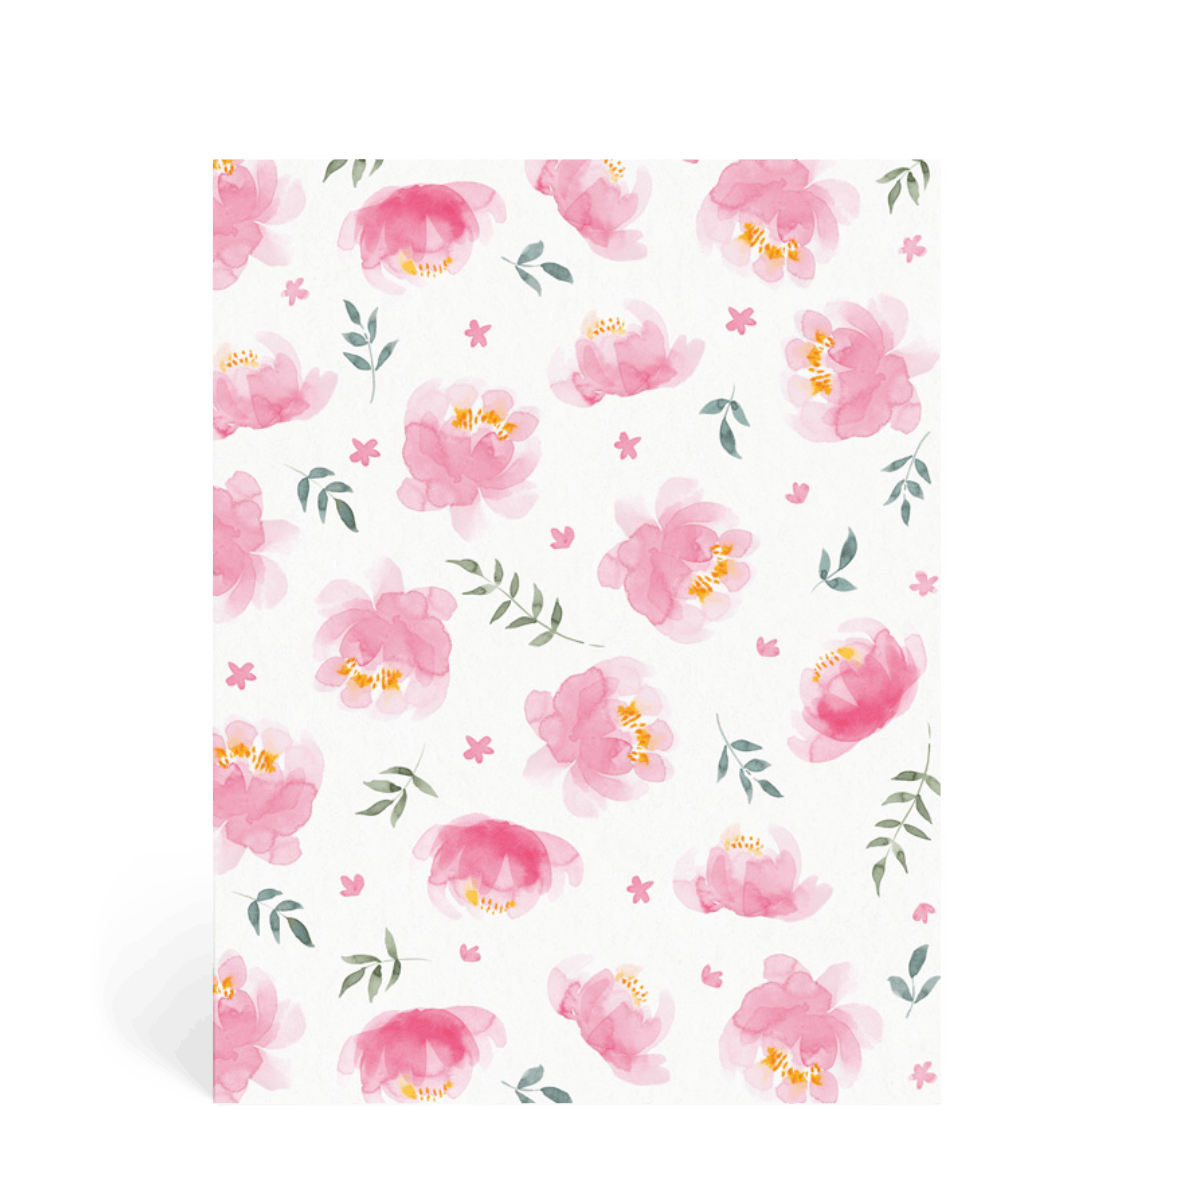 Https%3a%2f%2fwww.papier.com%2fproduct image%2f45501%2f31%2fpeonies 11008 back 1535989164.png?ixlib=rb 1.1